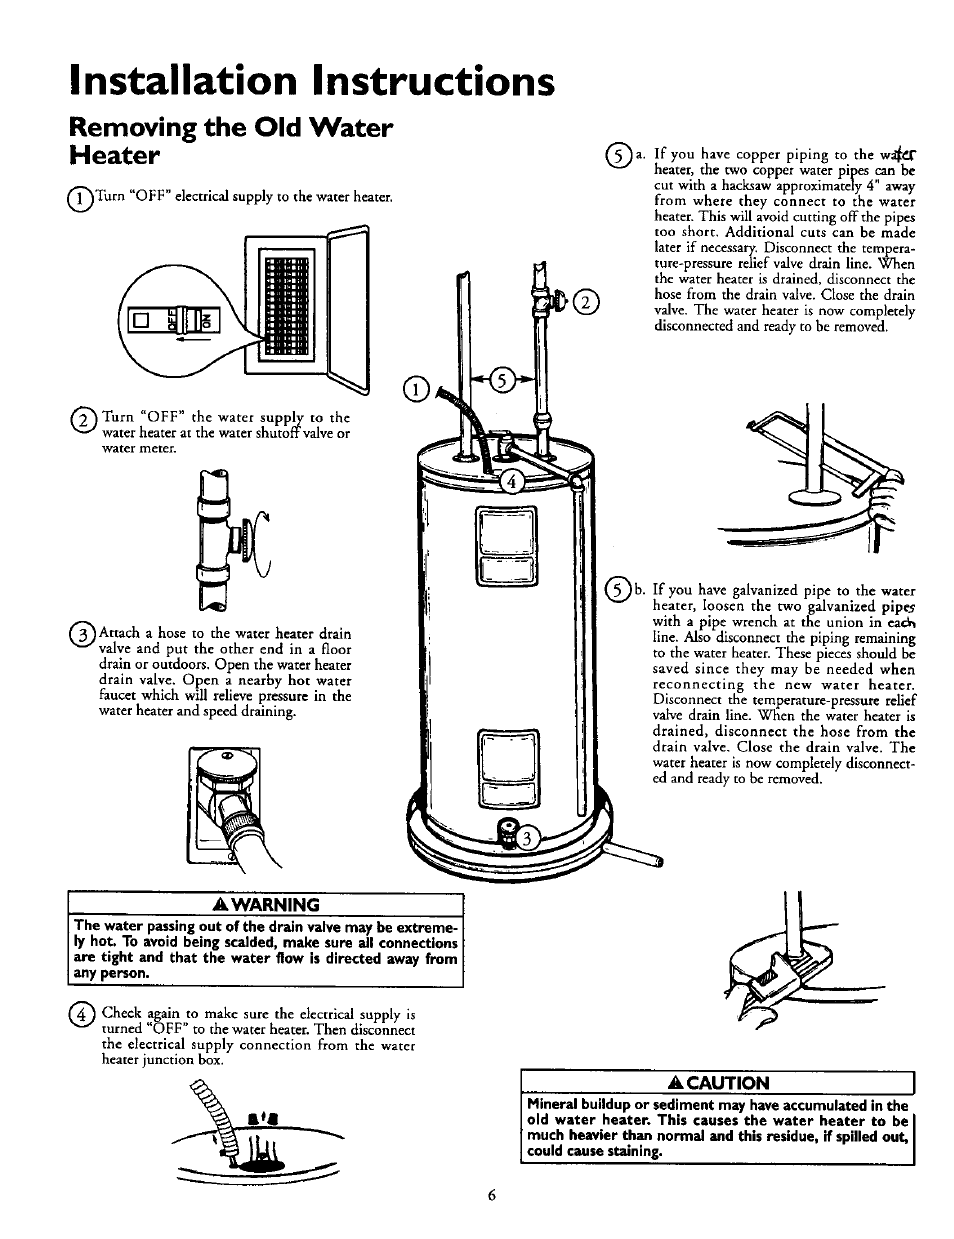 medium resolution of removing the old water heater a warning a caution installation instructions kenmore